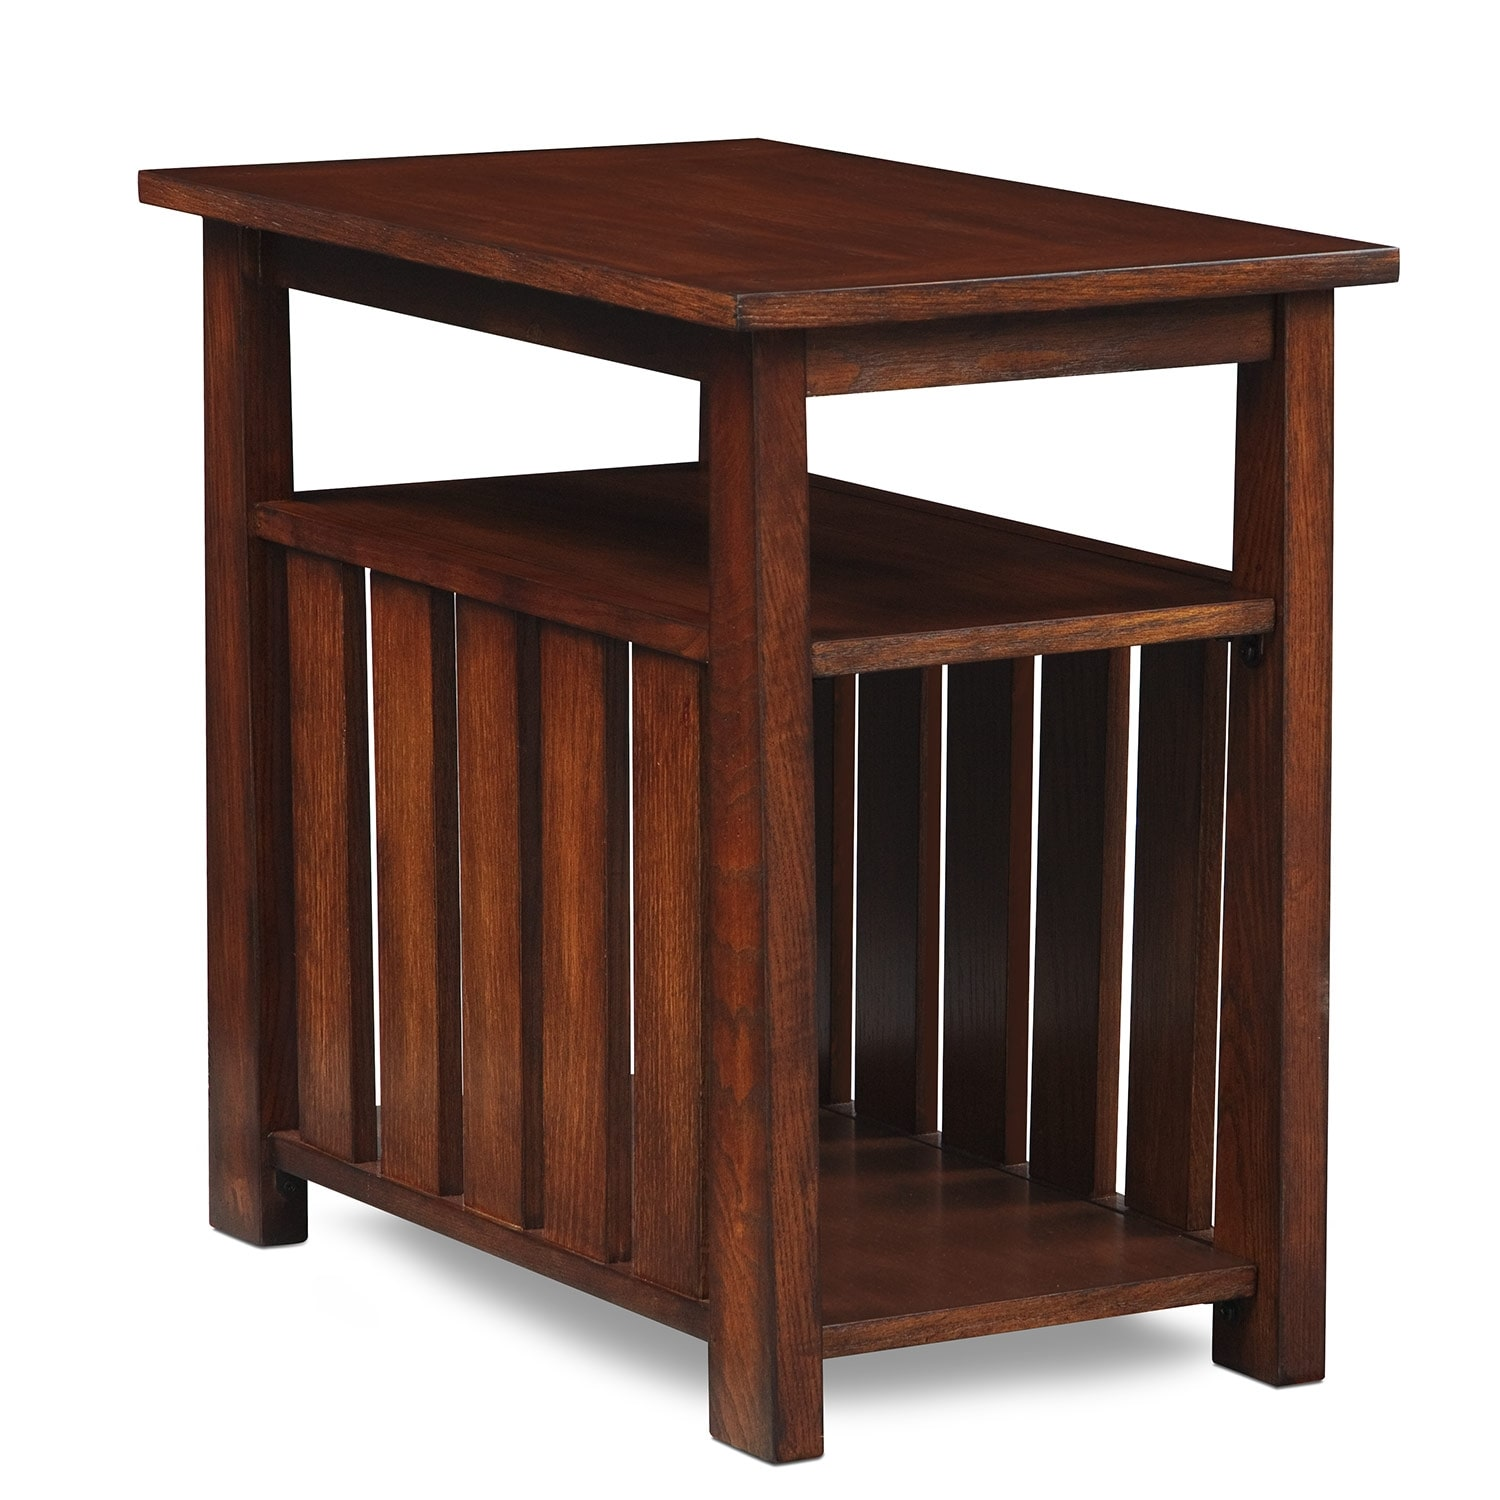 Tribute Chairside Table - Cherry